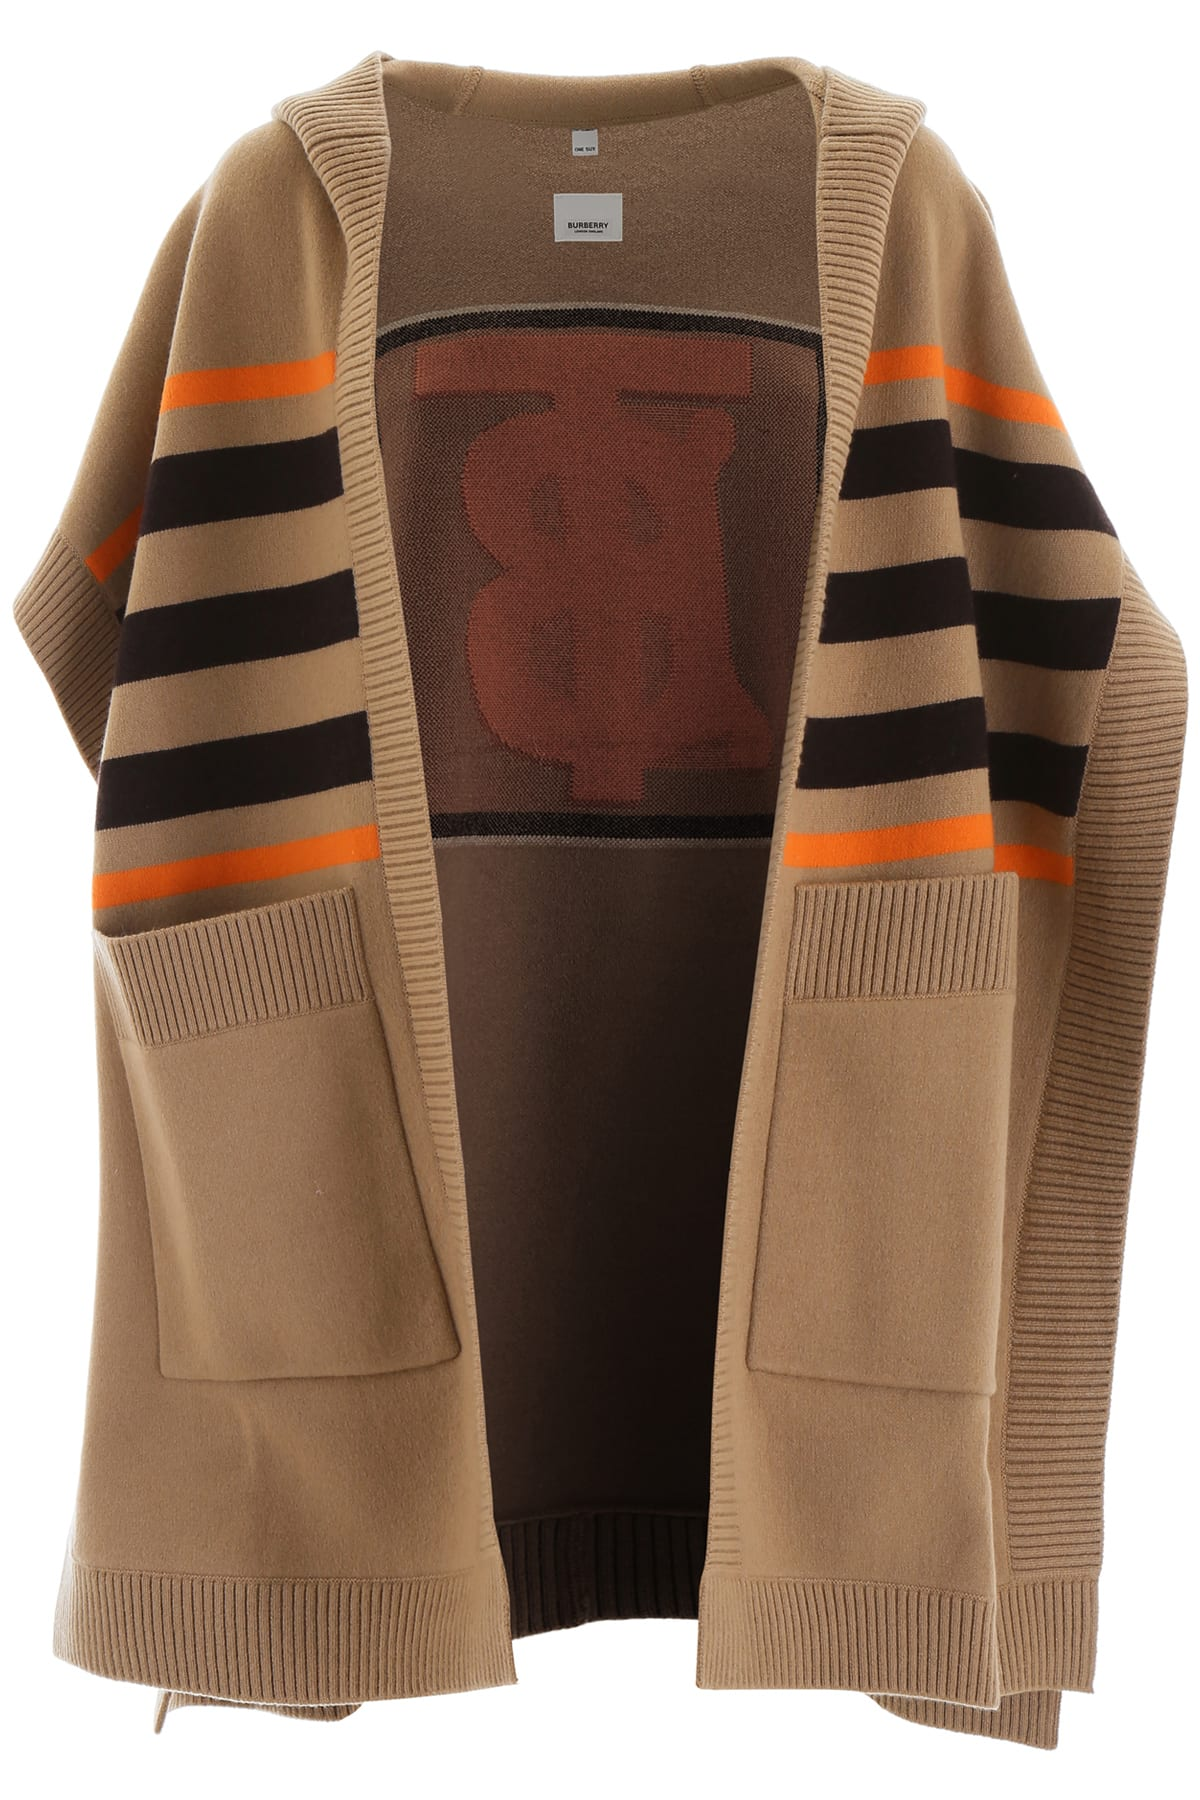 Photo of  Burberry Intarsia Cape- shop Burberry jackets online sales